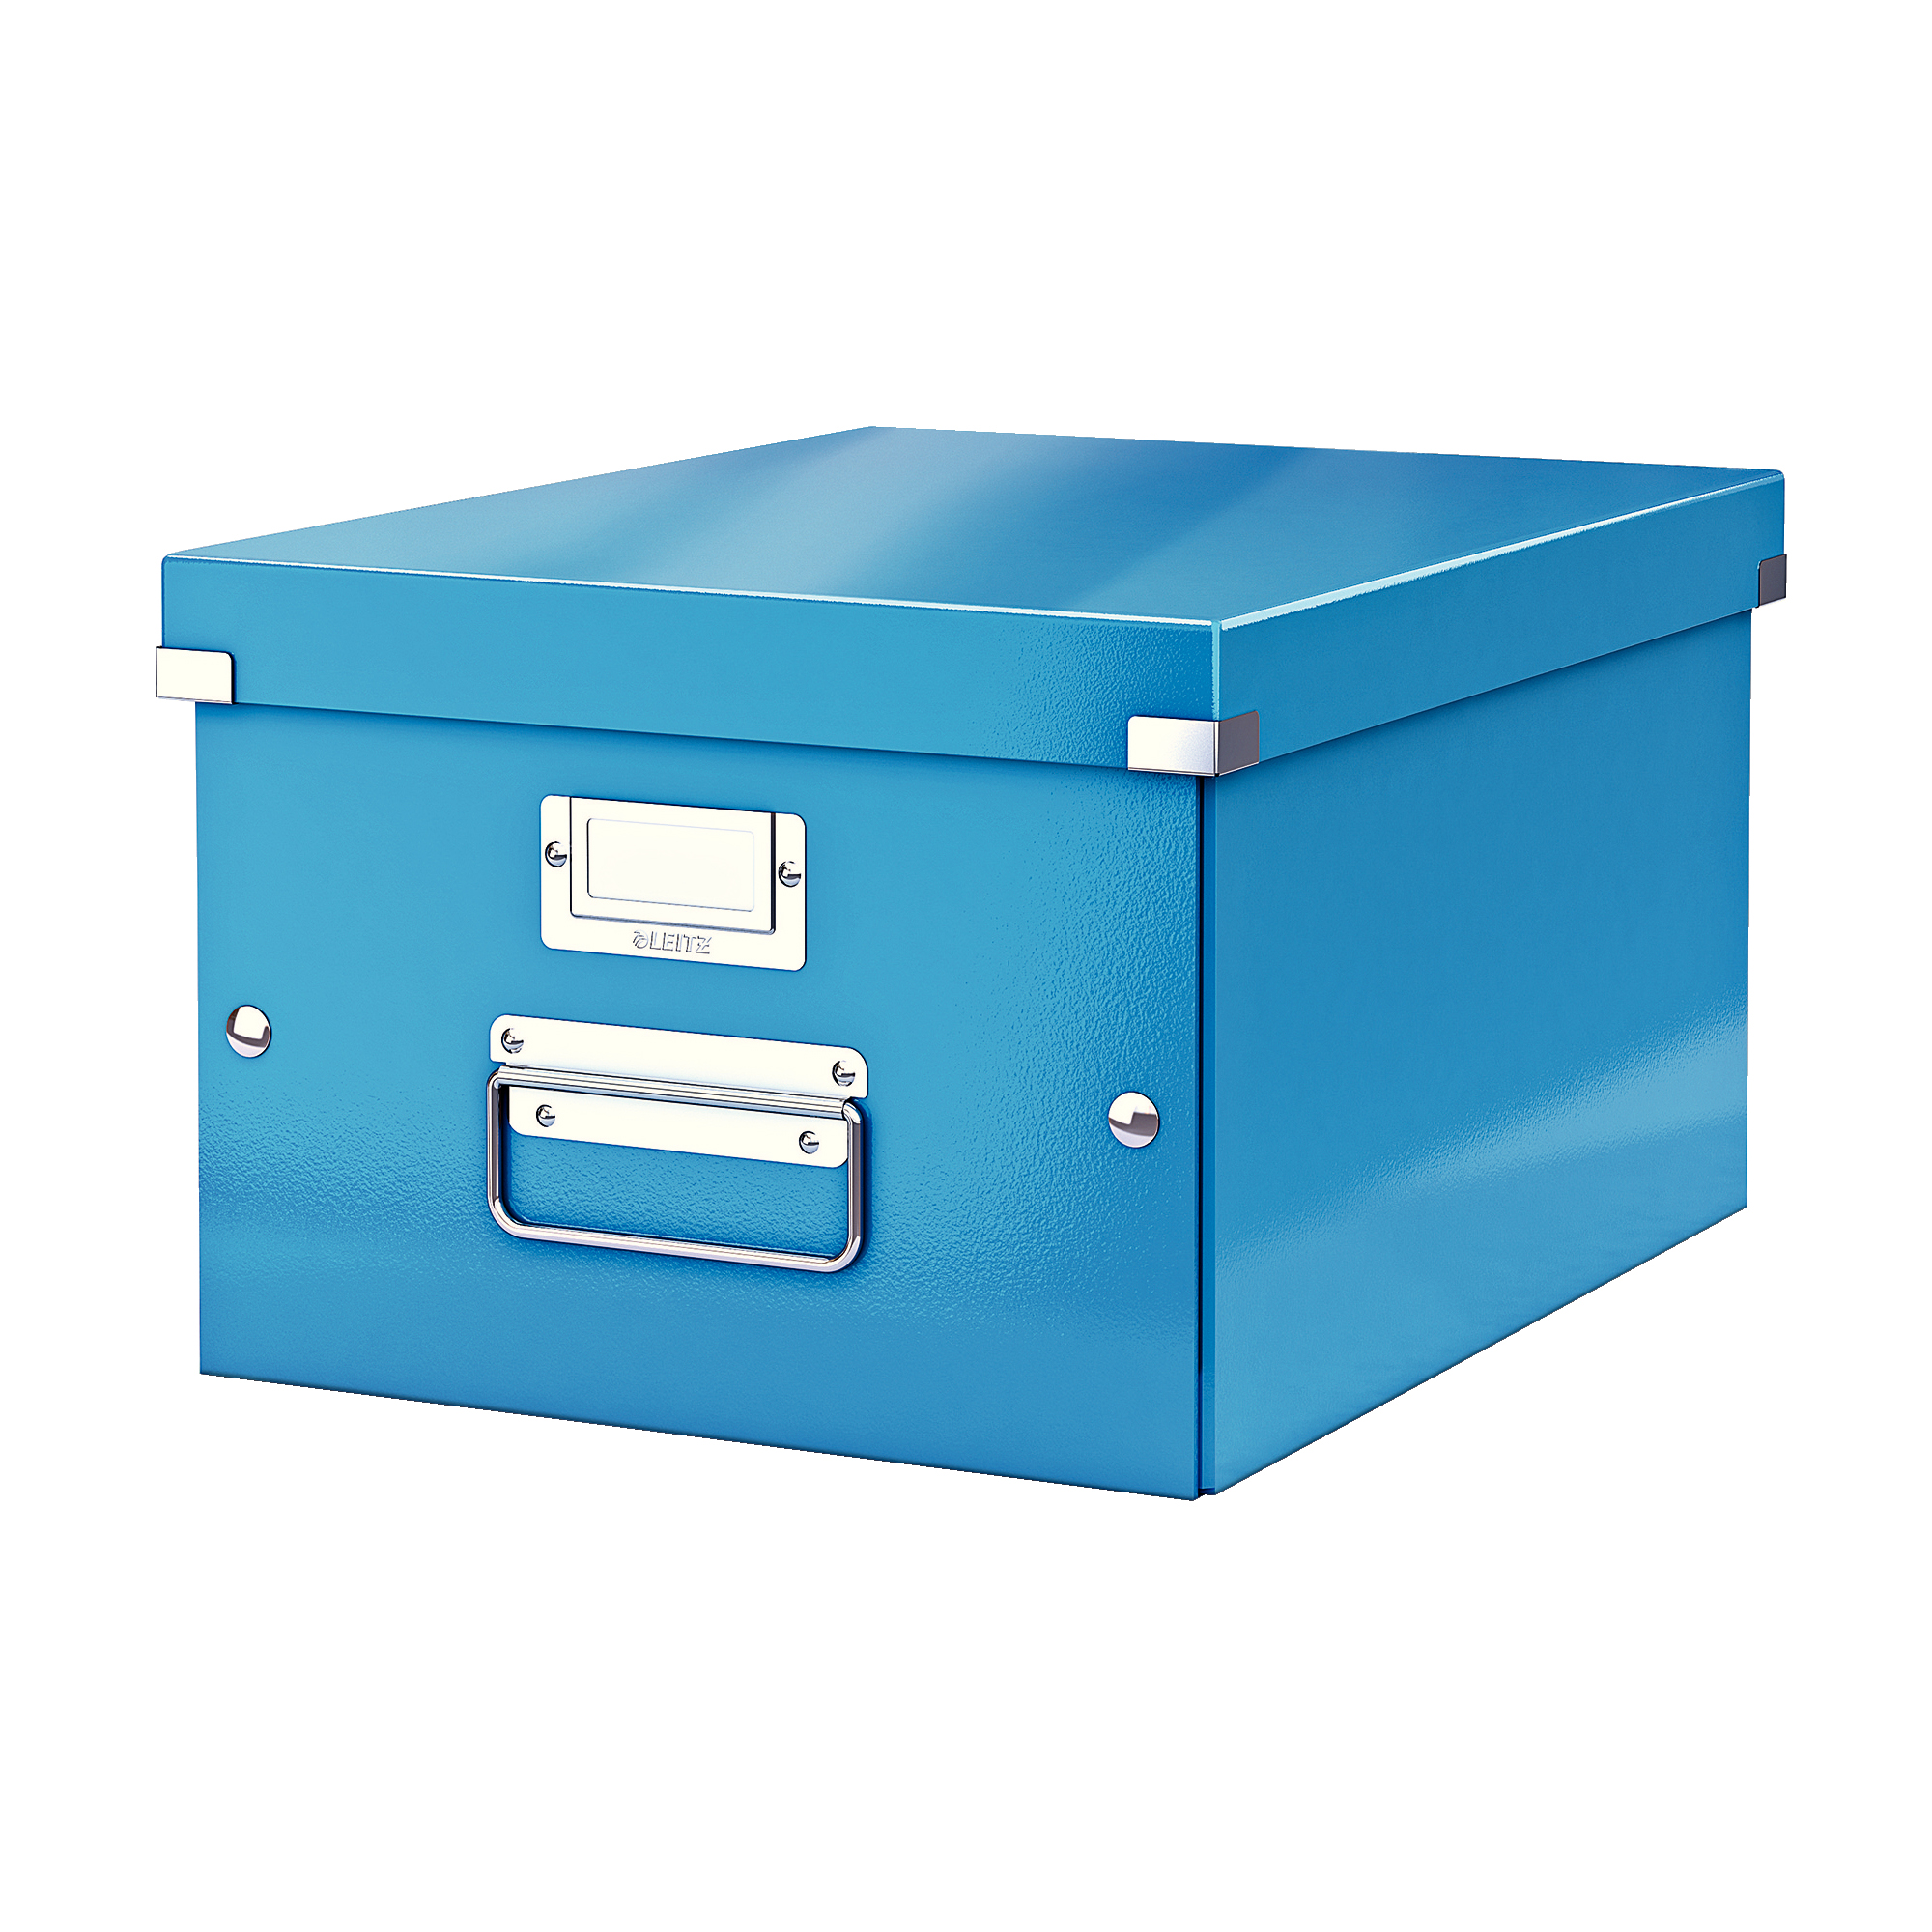 Tool Boxes Leitz Click & Store Collapsible Storage Box Medium For A4 Blue Ref 60440036